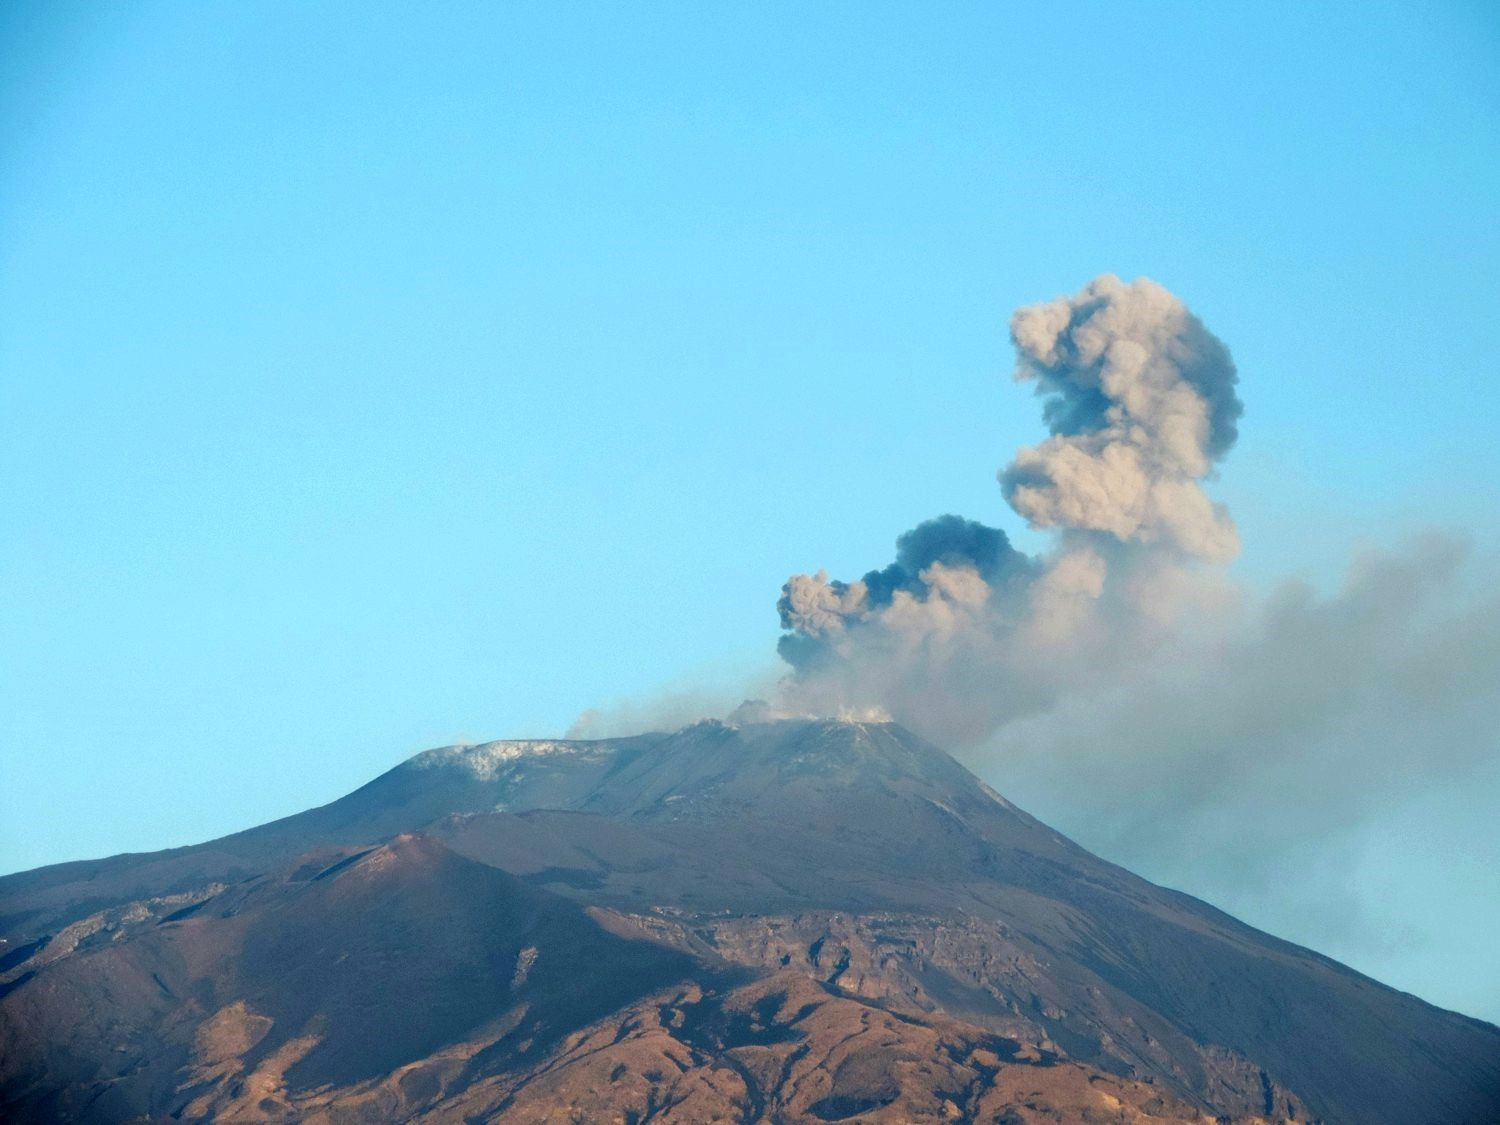 Etna - plume of ash and gases from the Northeast Crater (NEC) on 09/12/2015 - photo Boris Behncke / INGV Catania